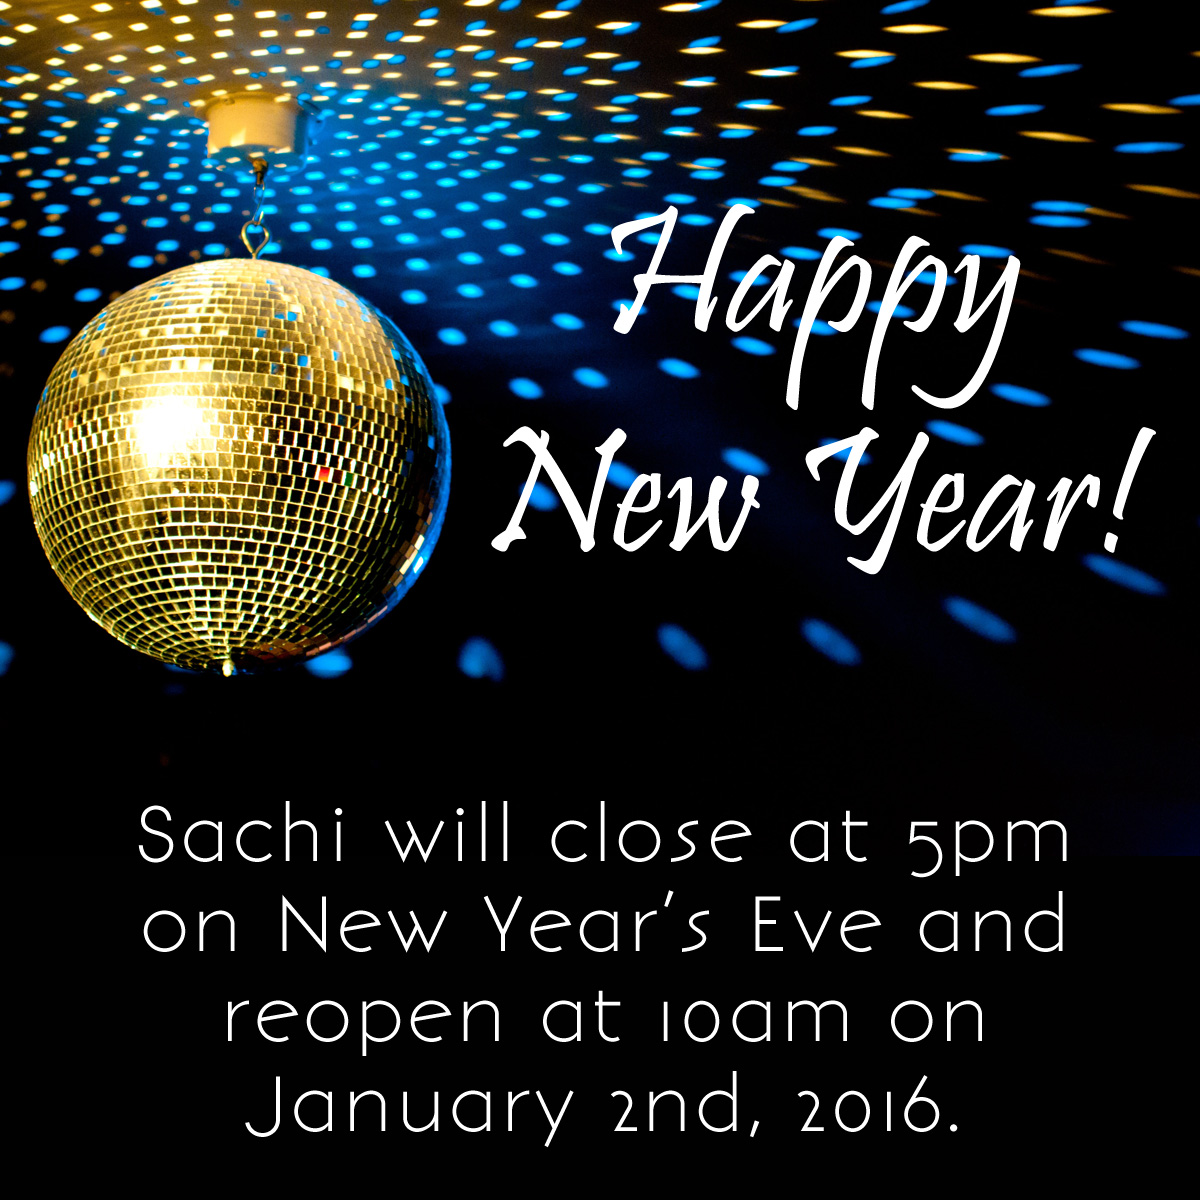 Sachi is closed on New Year's Day